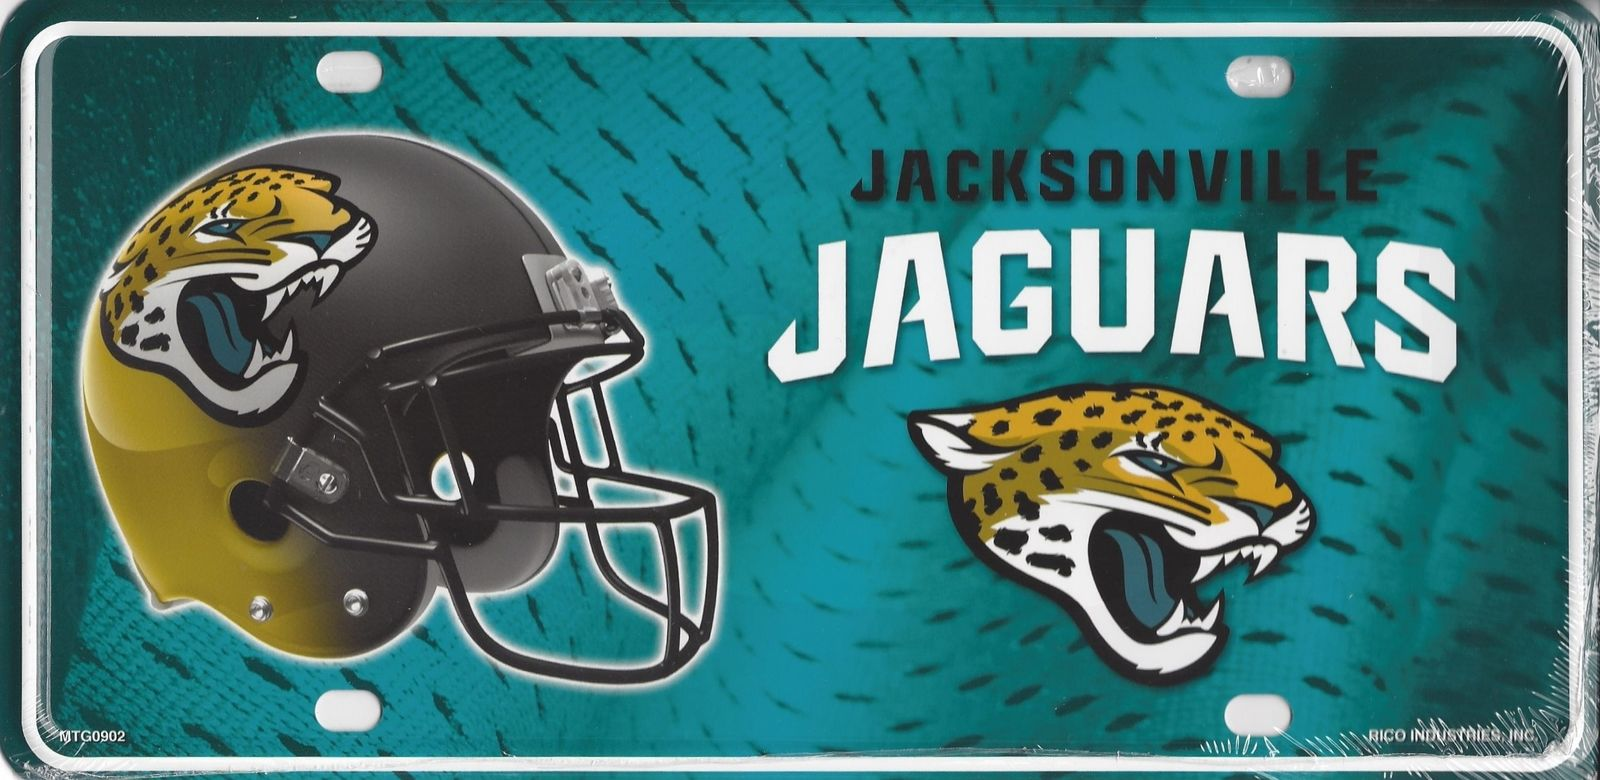 Jaguars-metal-license-plate